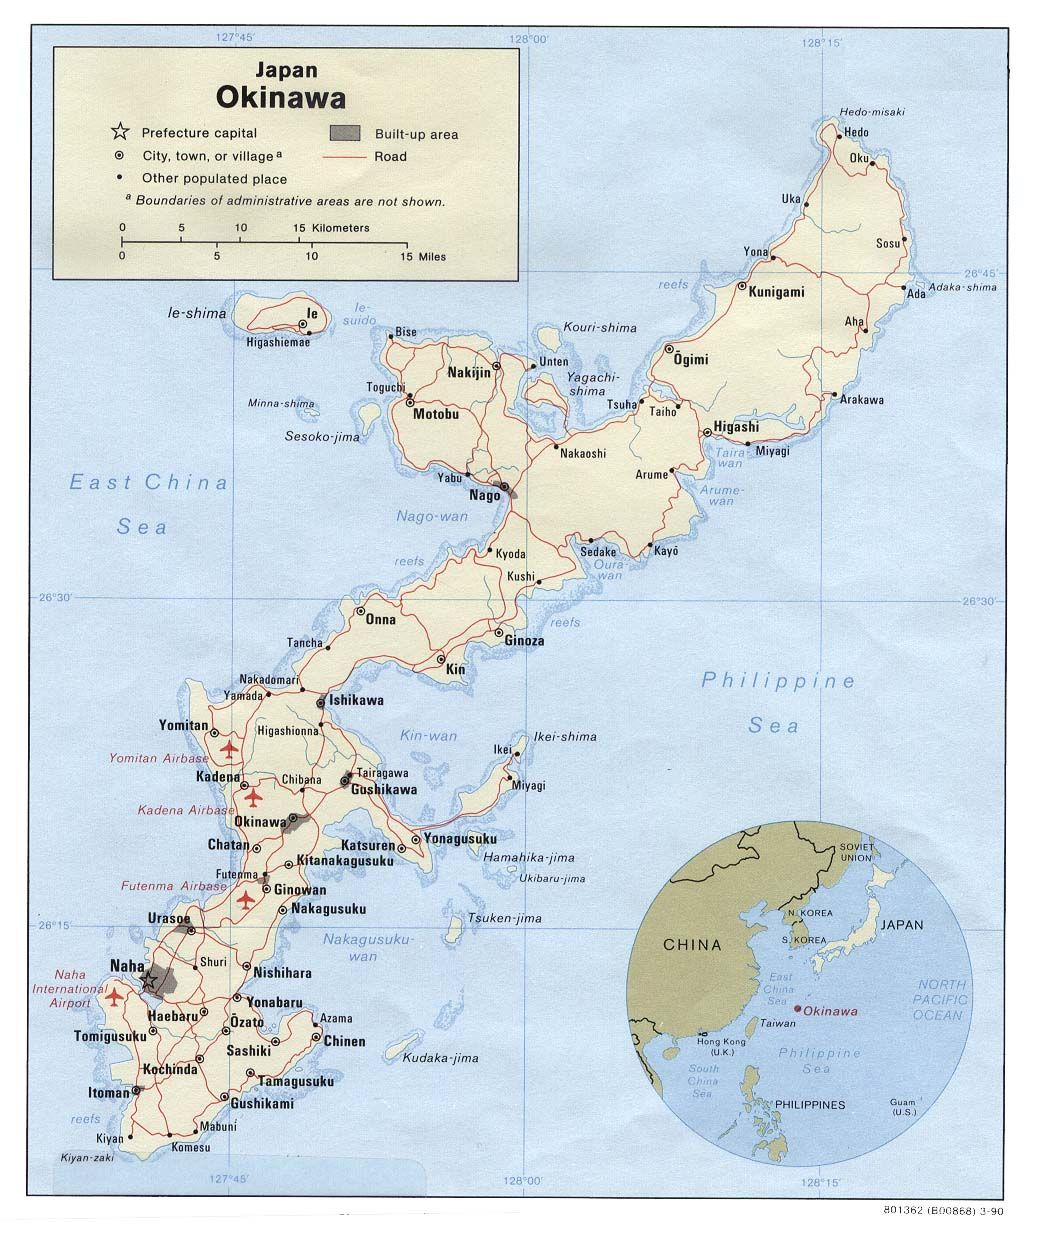 Maps of Japan, including several of Okinawa | OKI ...